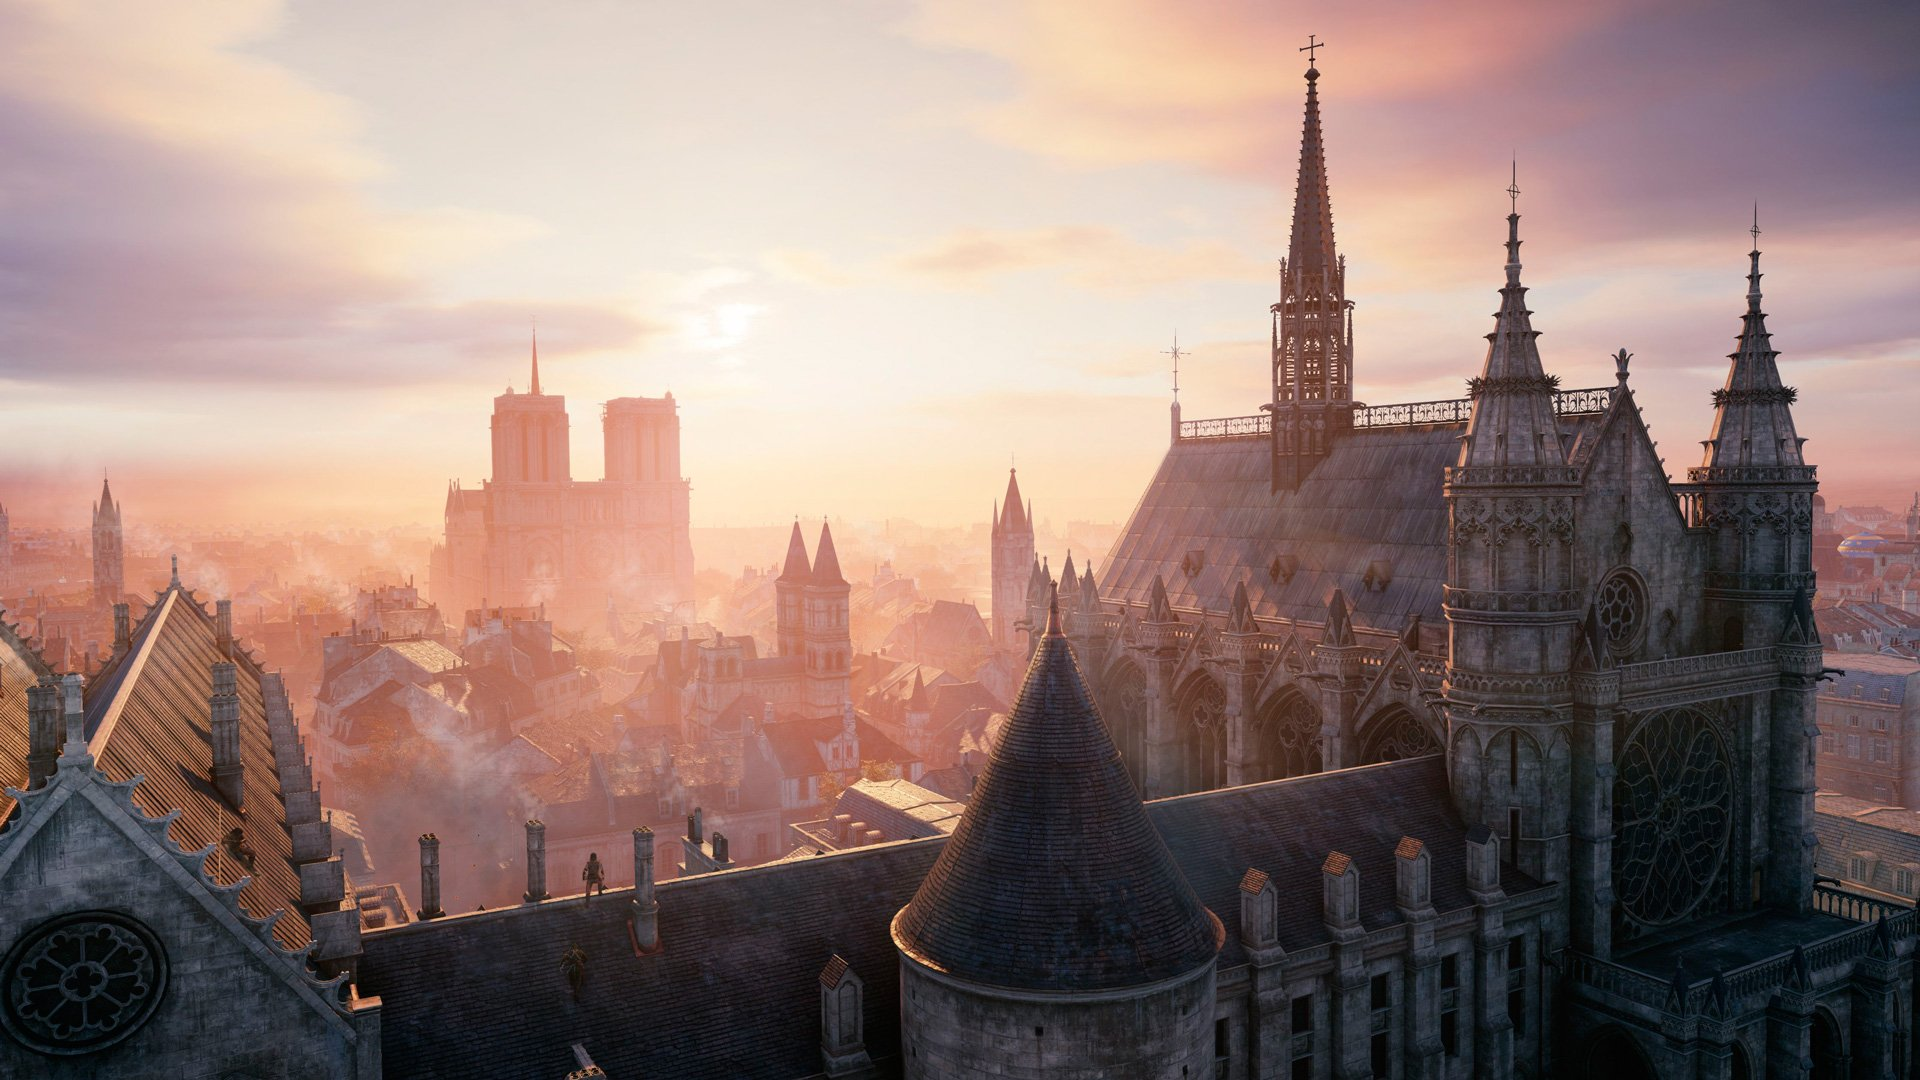 Скриншоты Assassin's Creed: Unity в 4K - Изображение 4